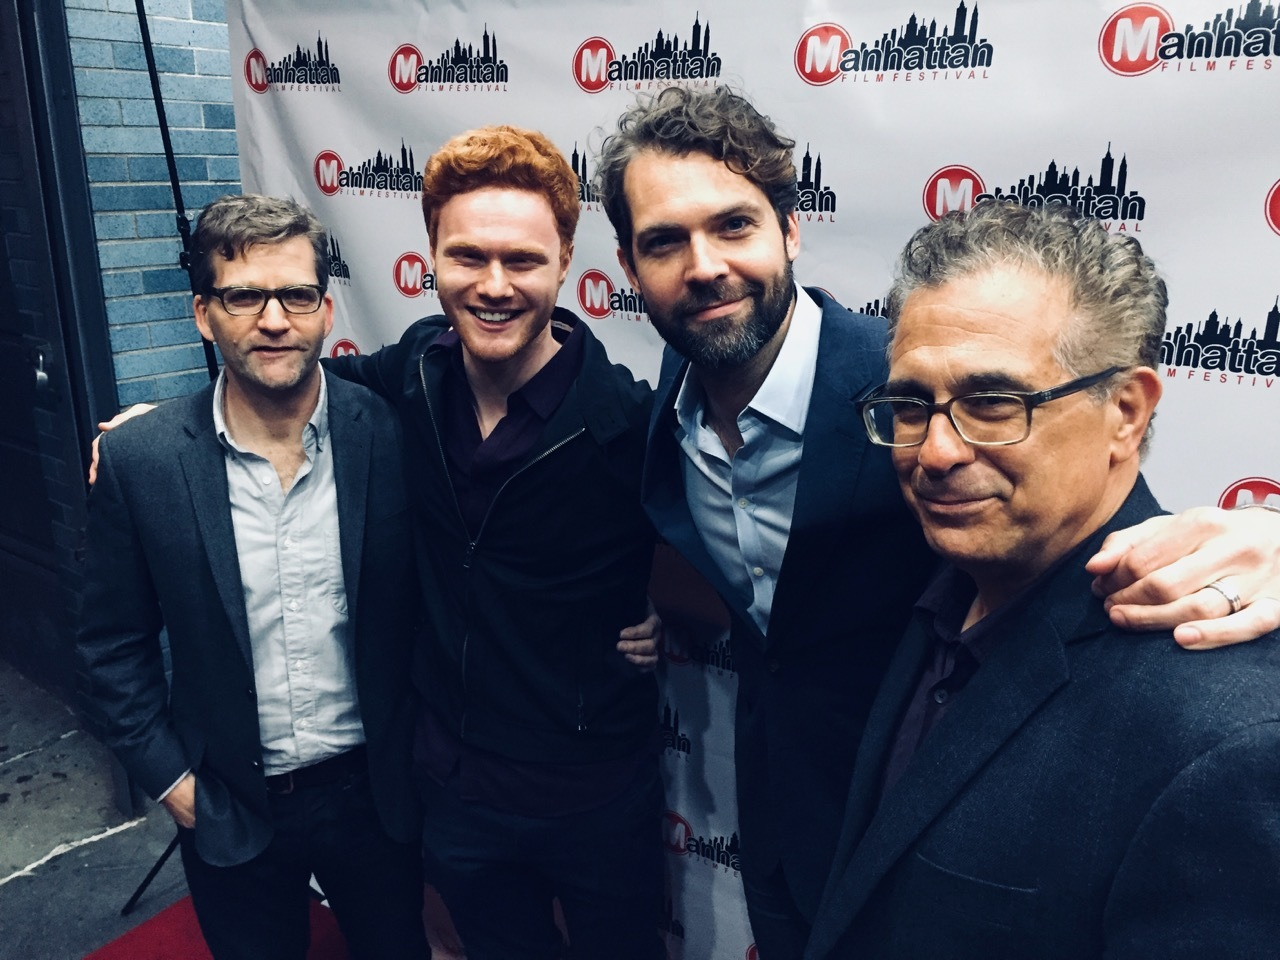 From left, director and co-creator Shannon Goldman, actor Nicholas Barasch, actor Rob Hancock, and writer and co-creator Tony Spiridakis at the Manhattan Film Festival where